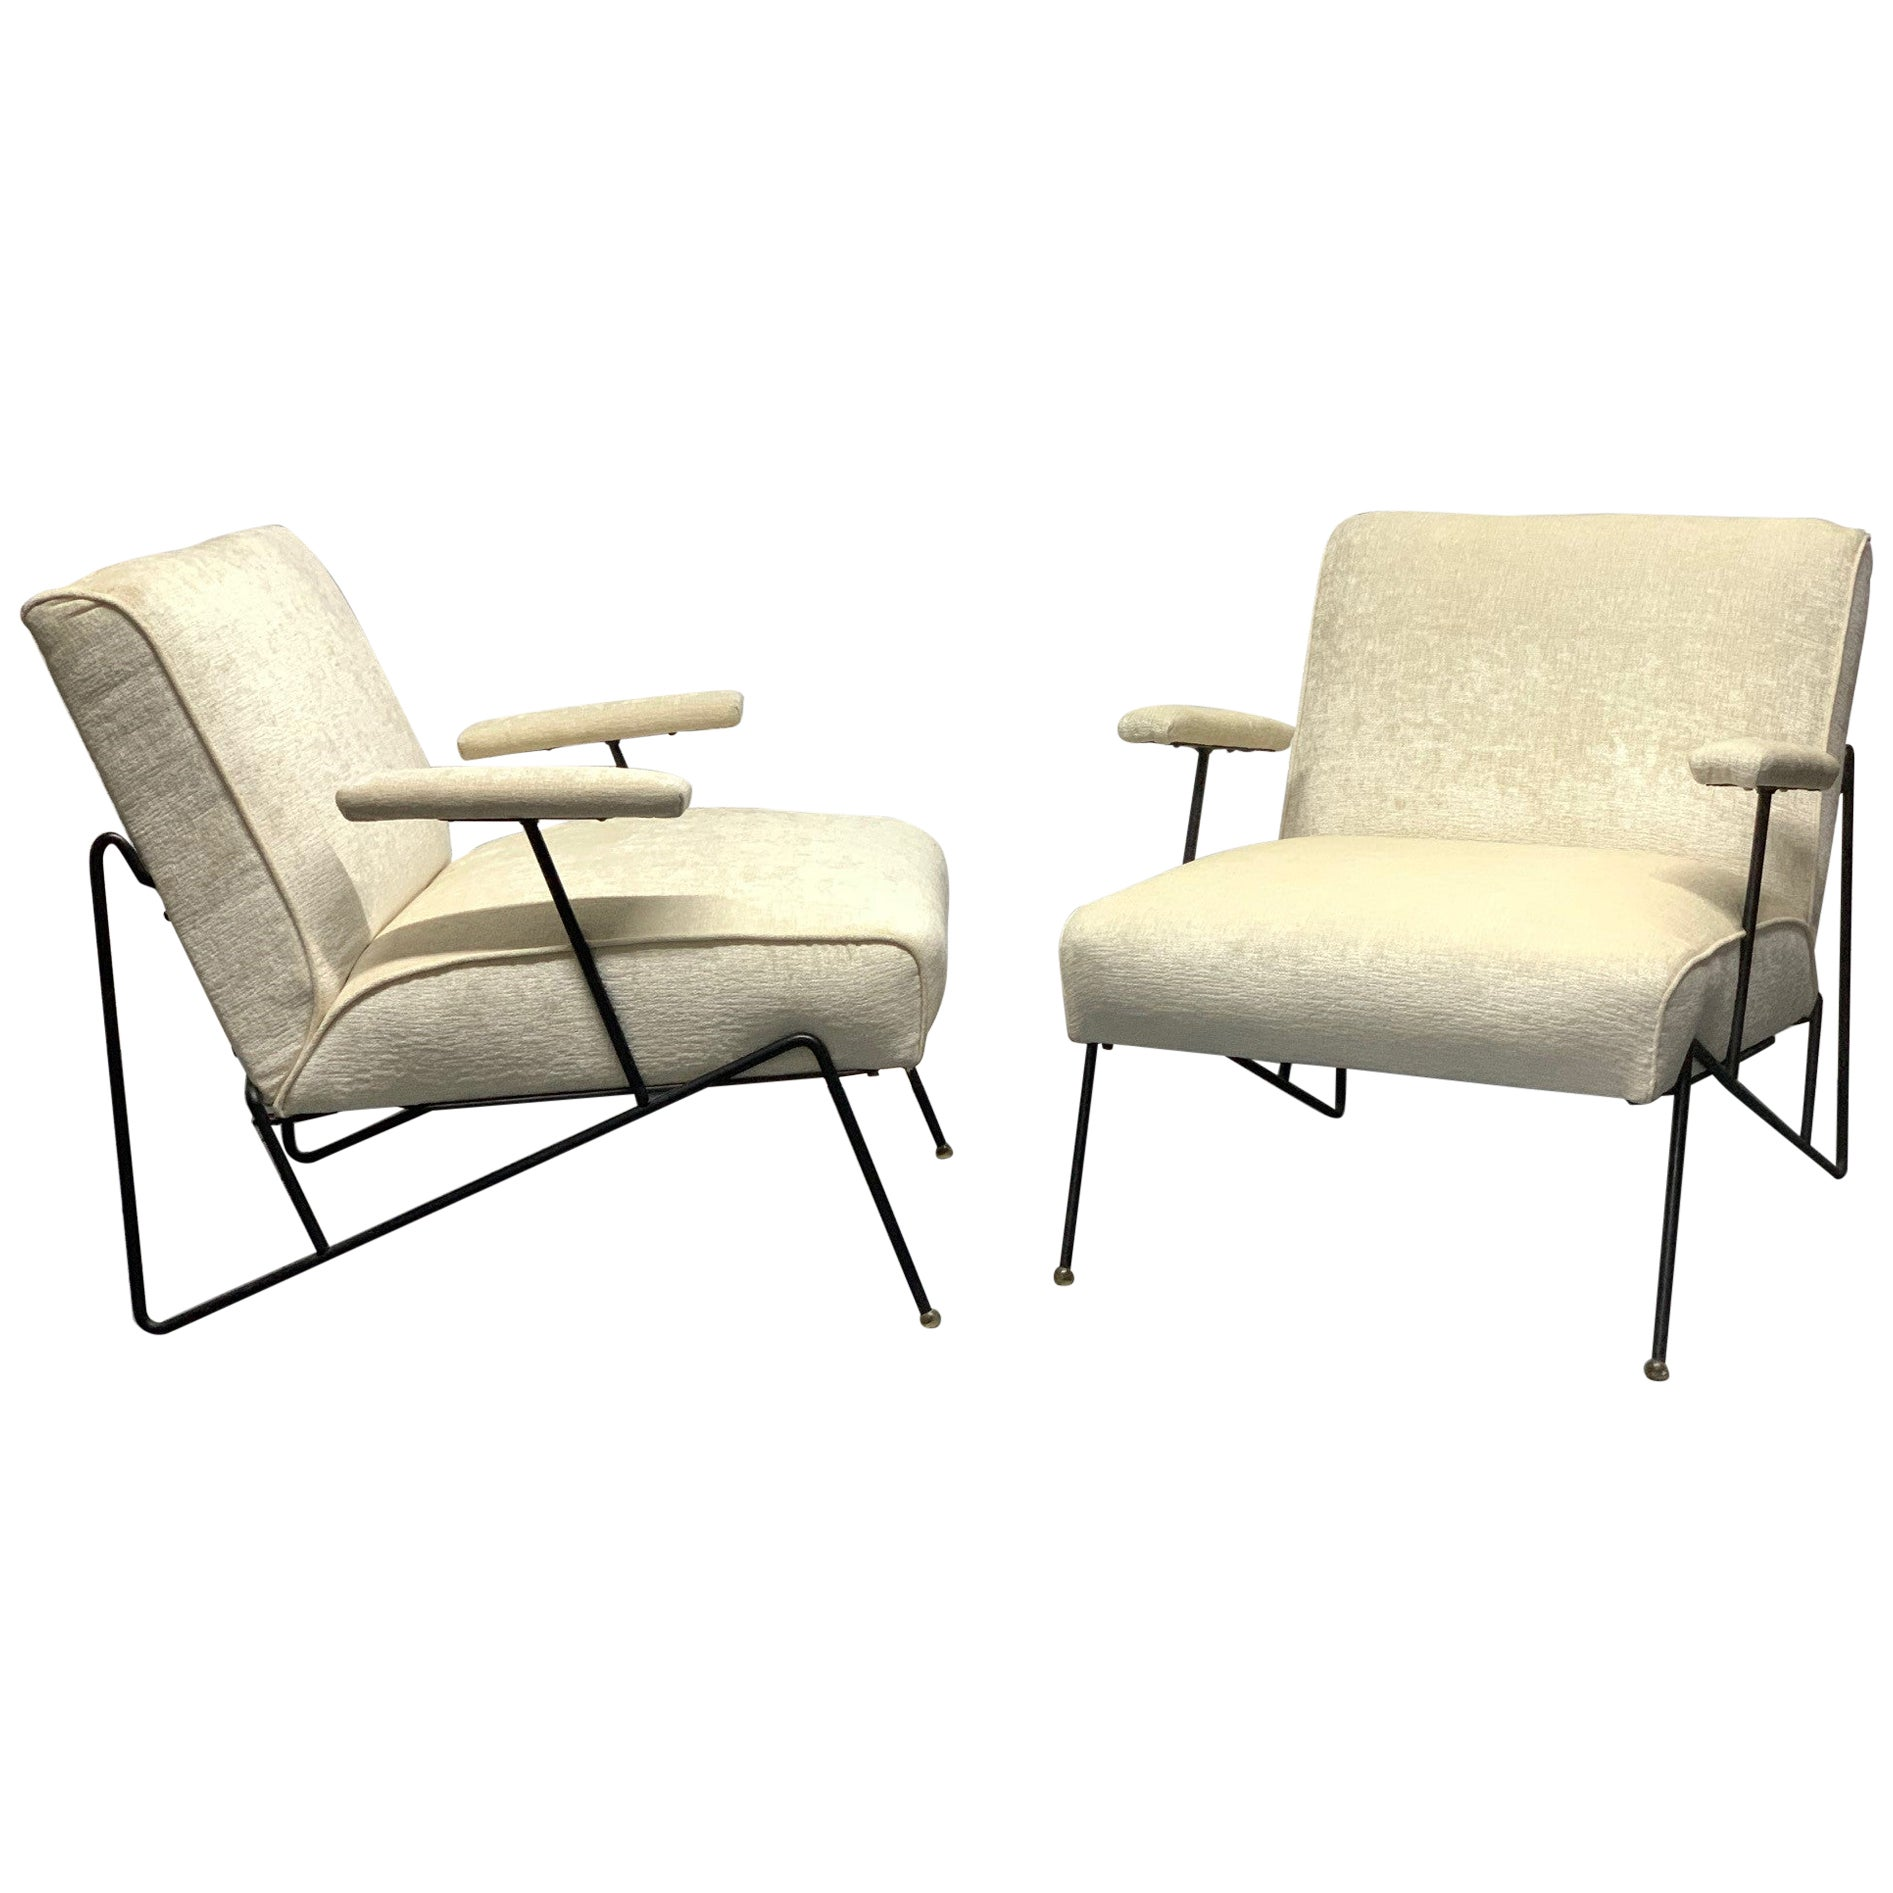 Pair of Wrought Iron Lounge Chairs by Maurizio Tempestini for Salterini